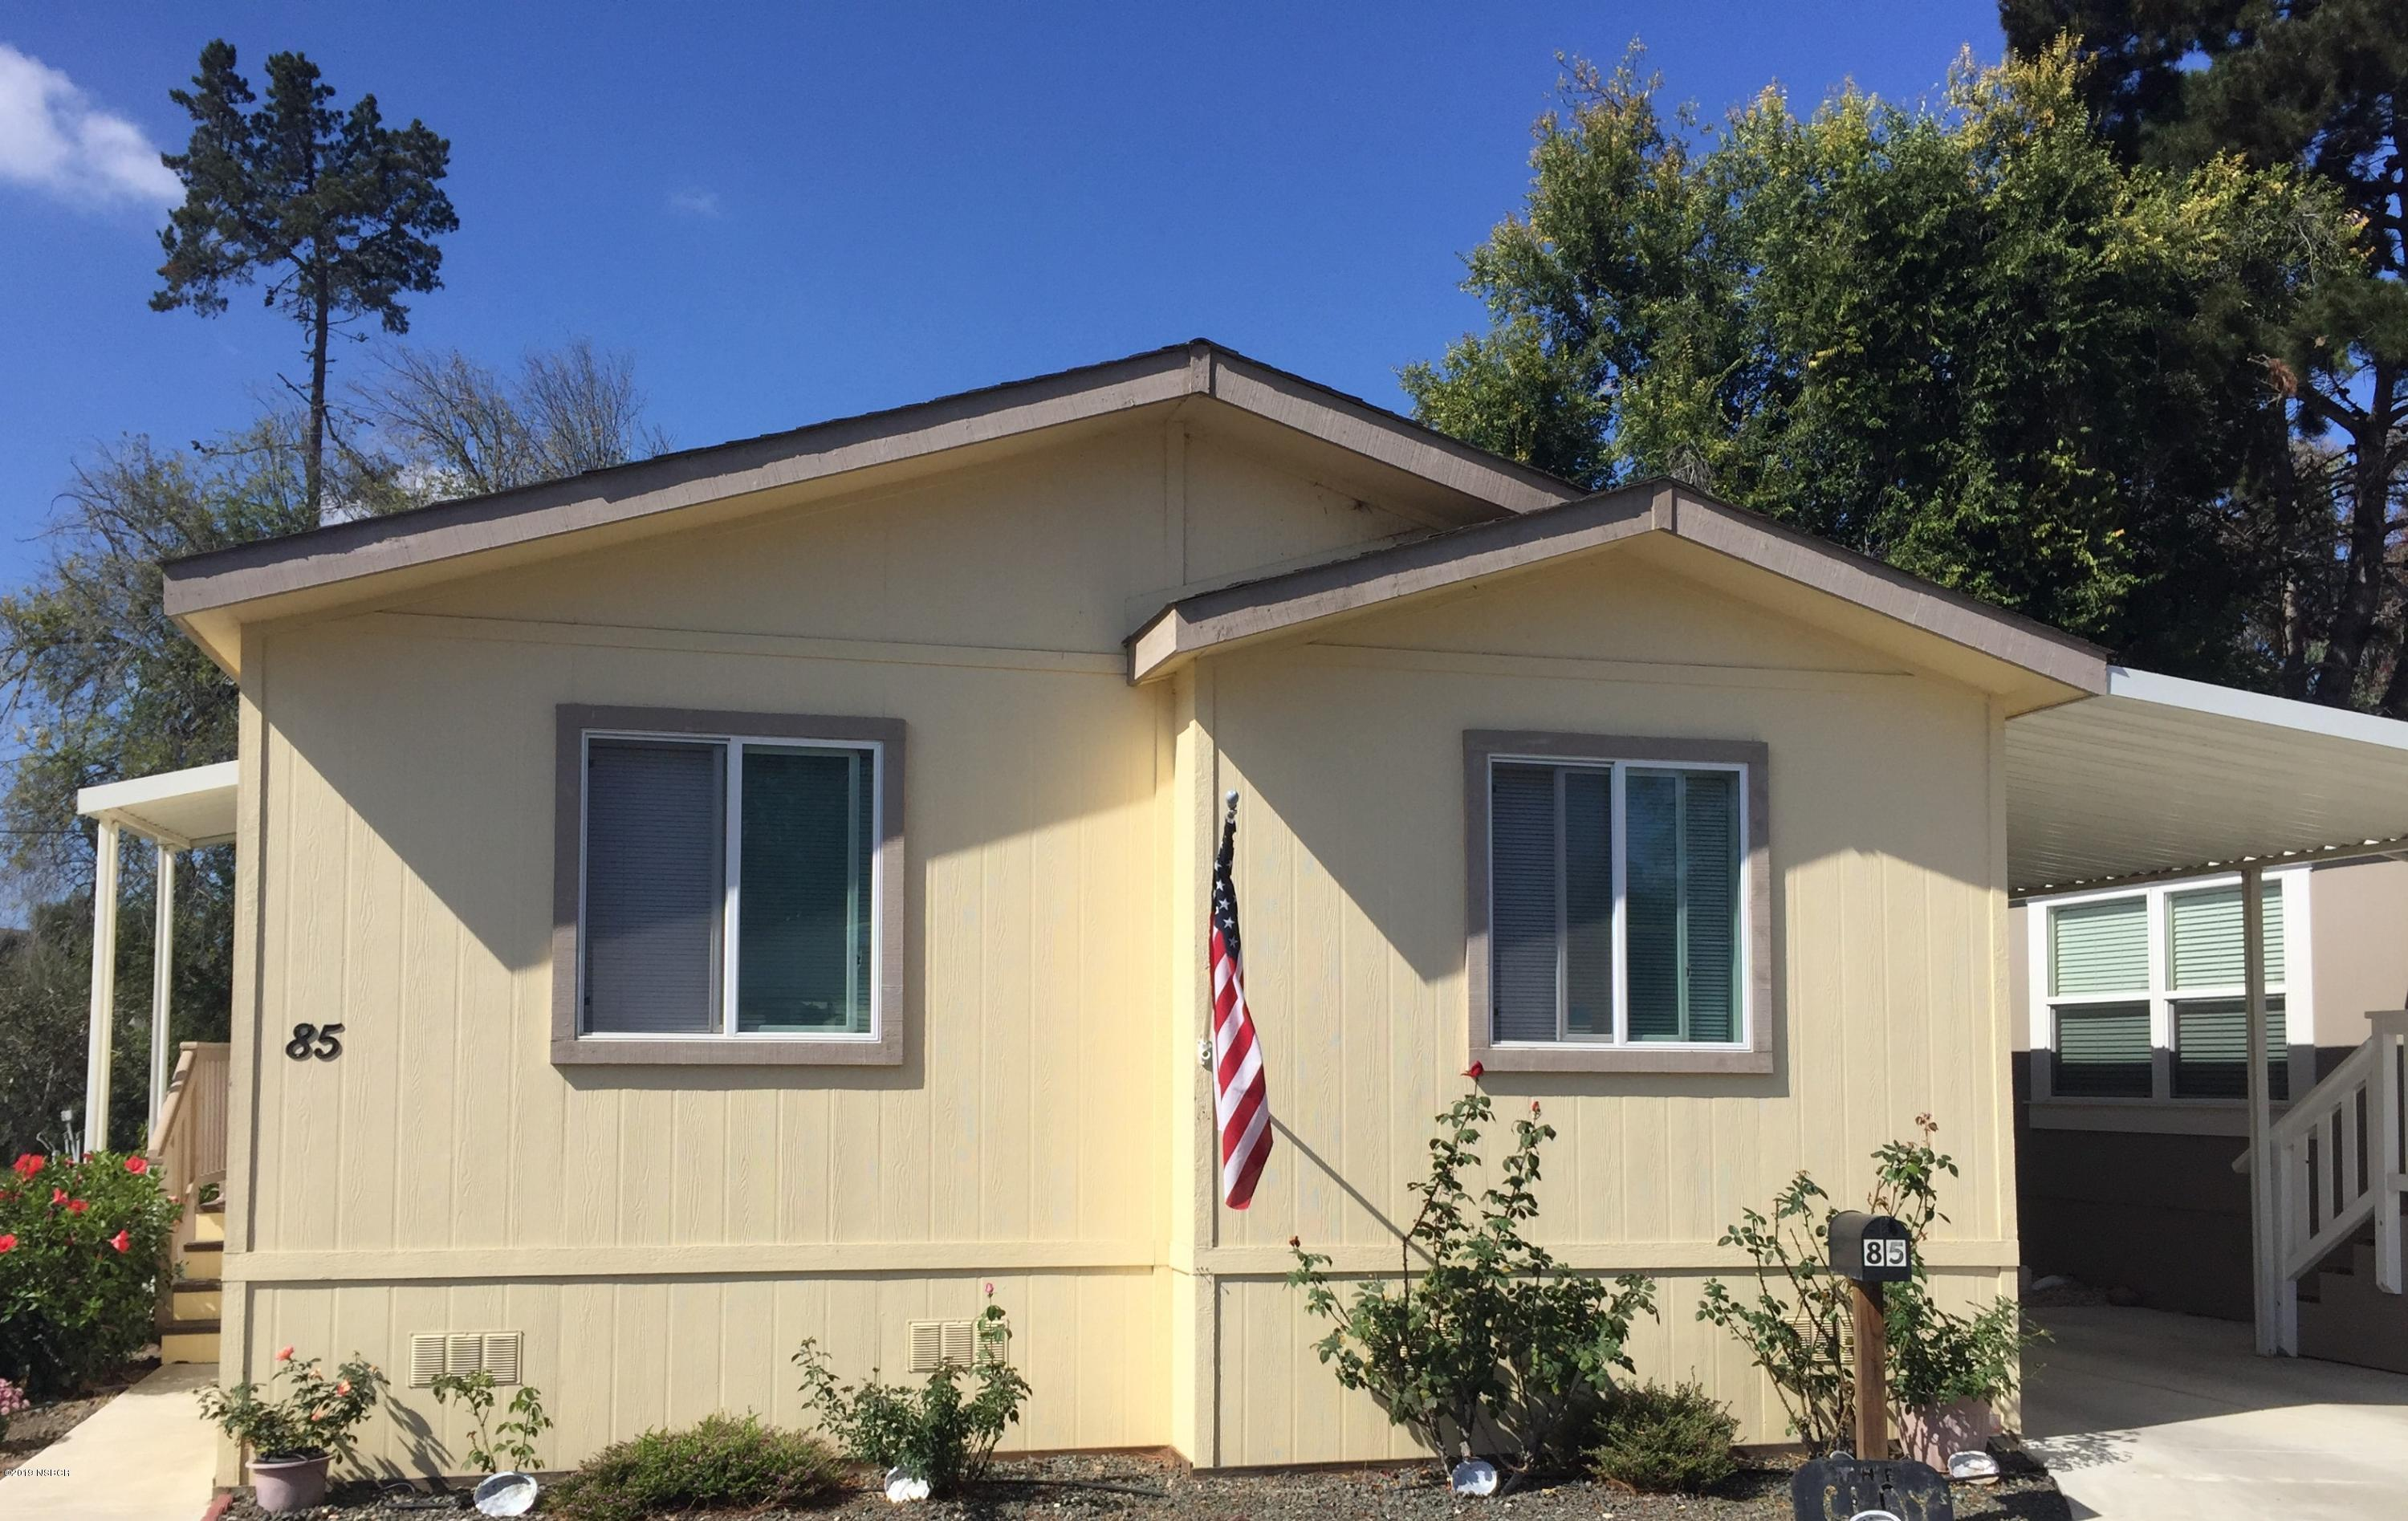 3 bed/2 bath Home in Santa Maria for $155,900